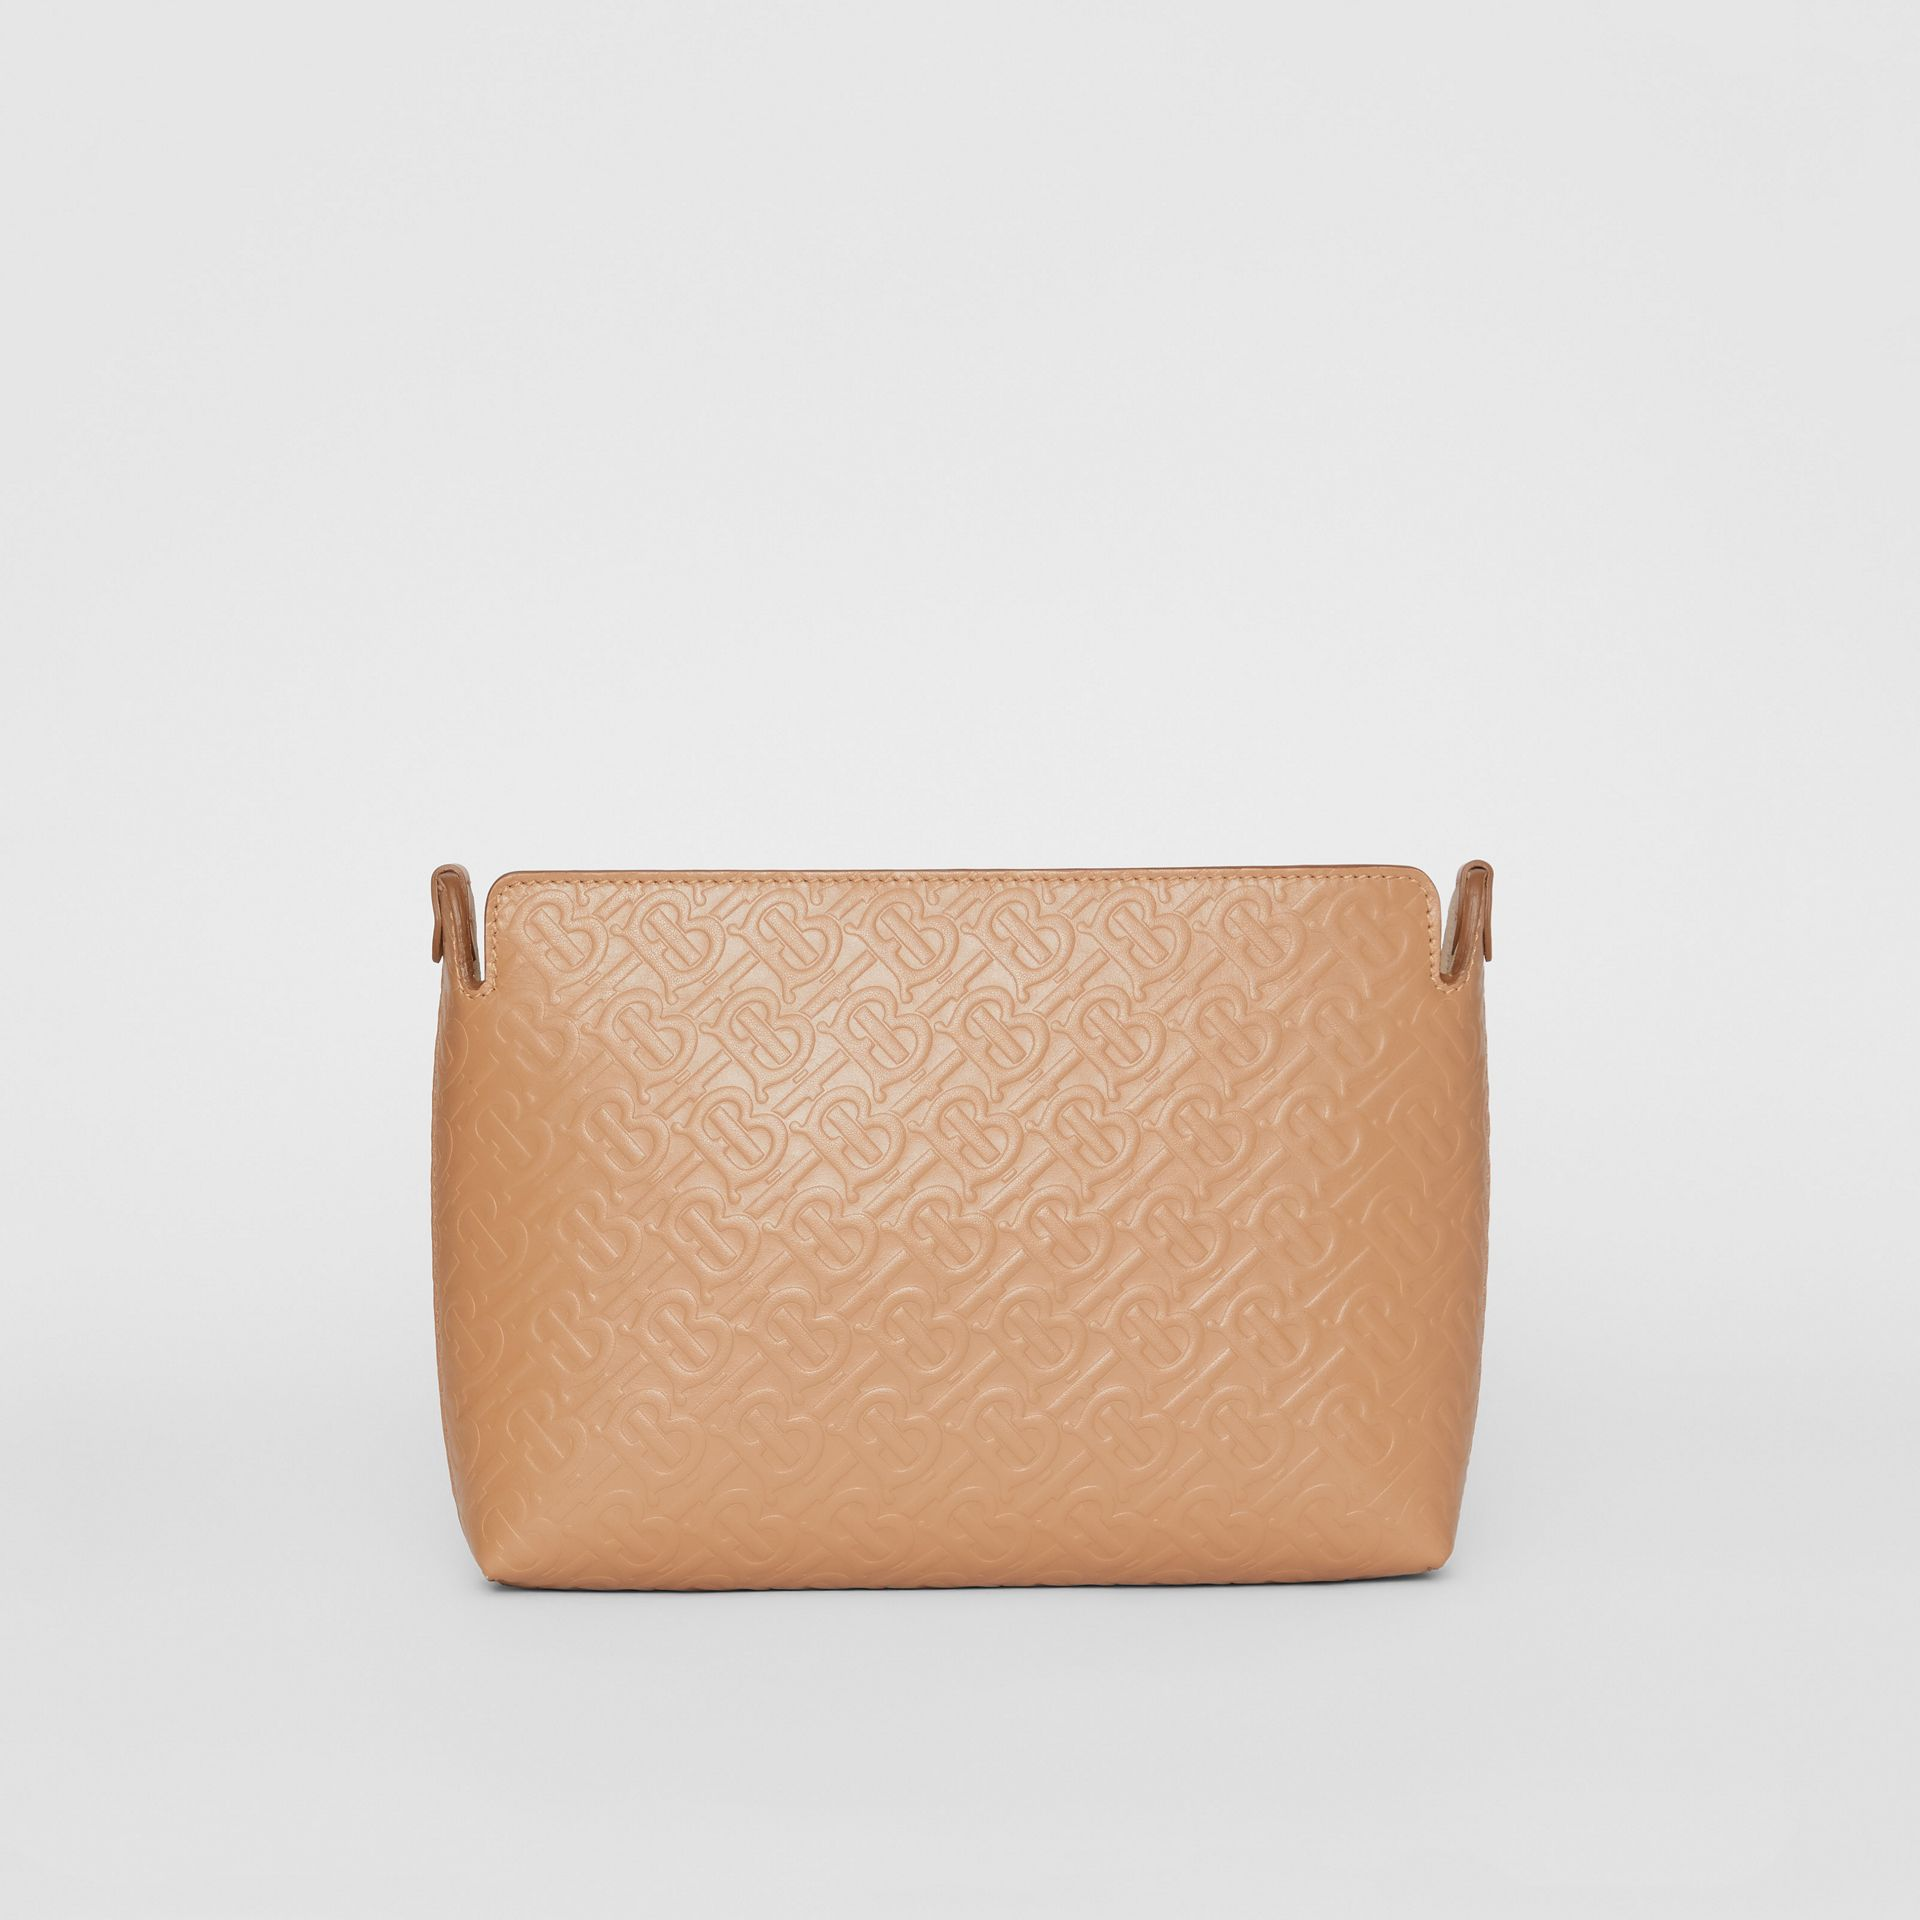 Medium Monogram Leather Clutch in Light Camel - Women | Burberry United States - gallery image 0